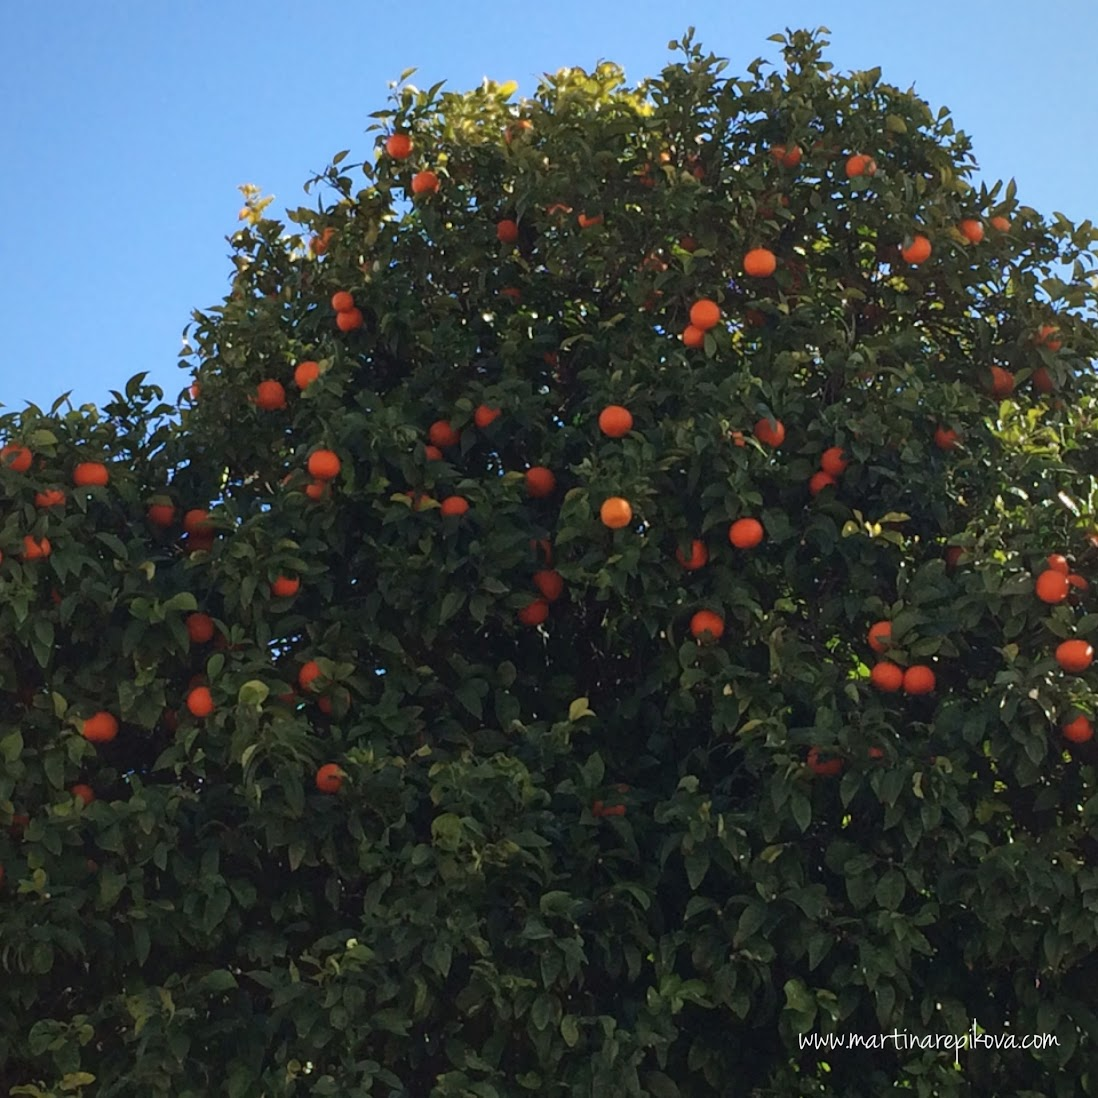 A tangerine tree in Athens, Greece